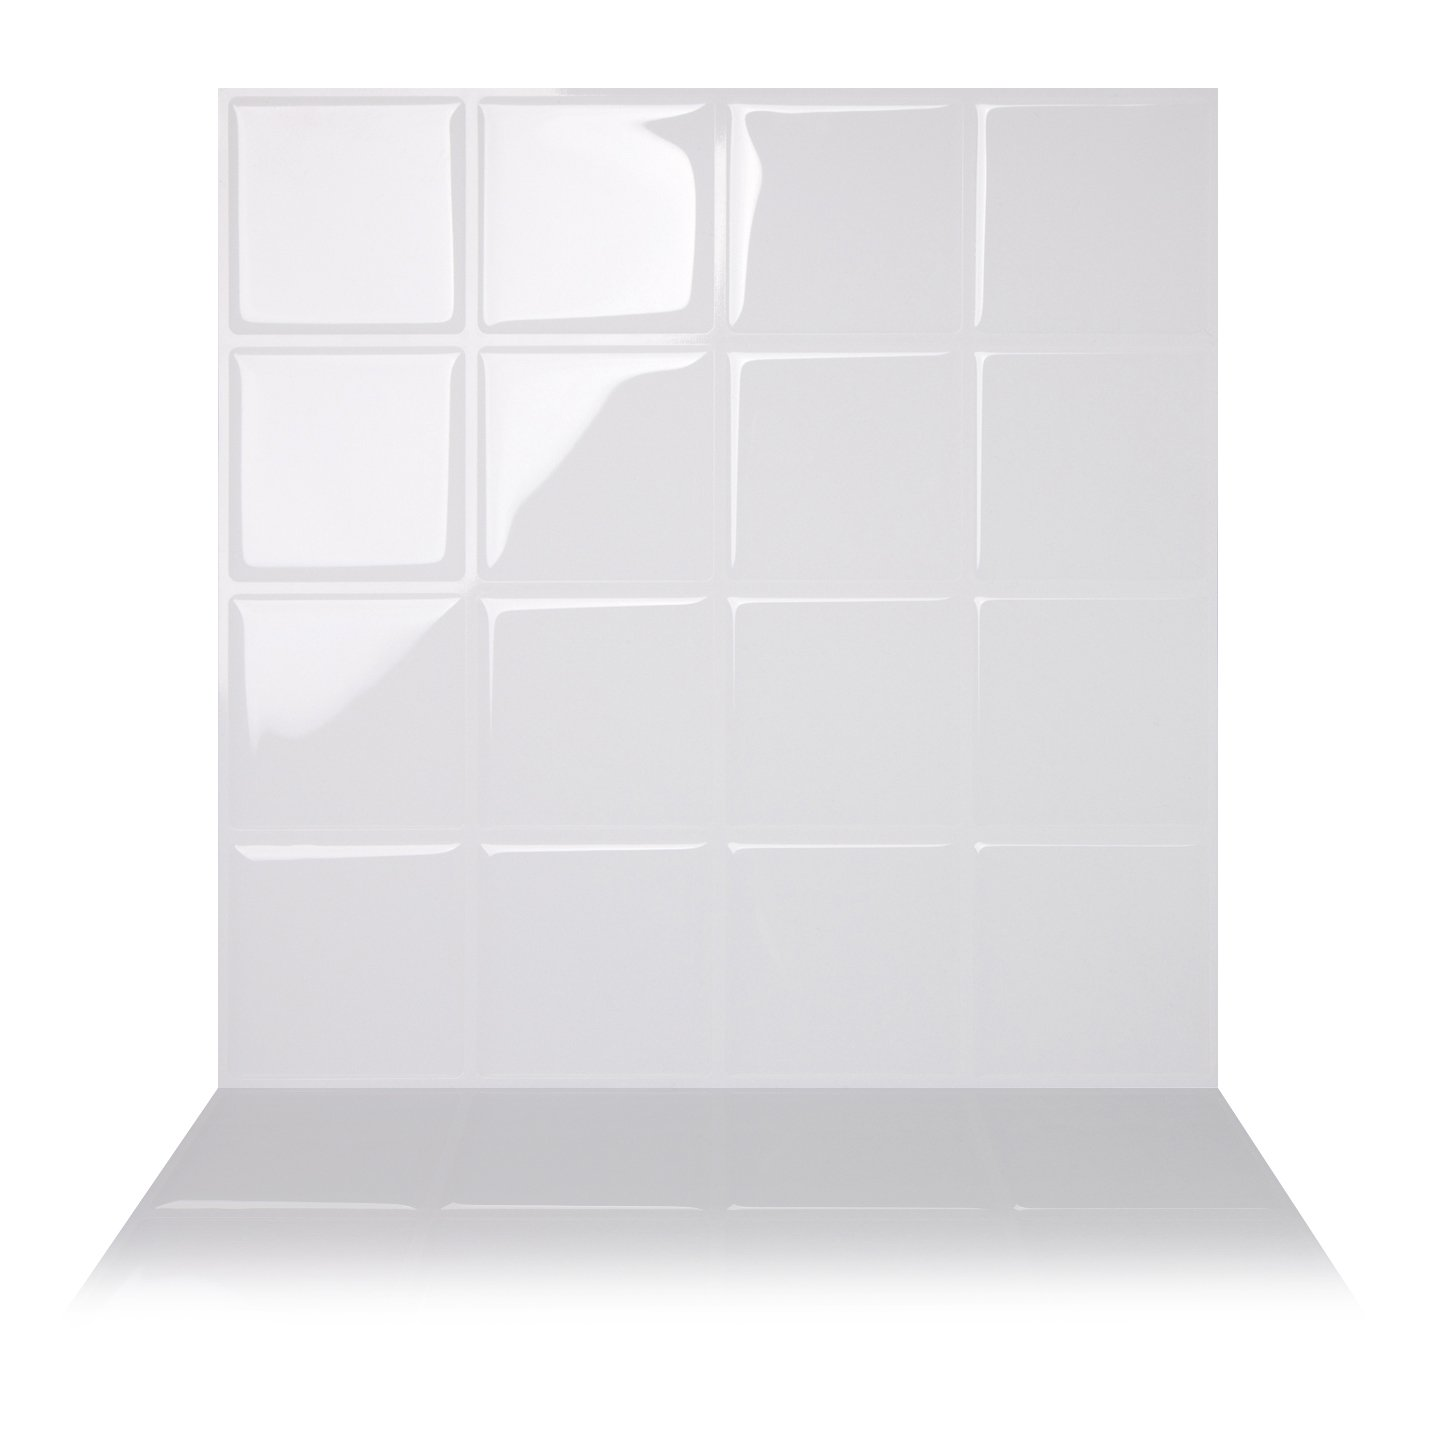 Tic Tac Tiles Premium Anti Mold Peel and Stick Wall Tile in Big Square White (10 Tiles, White)